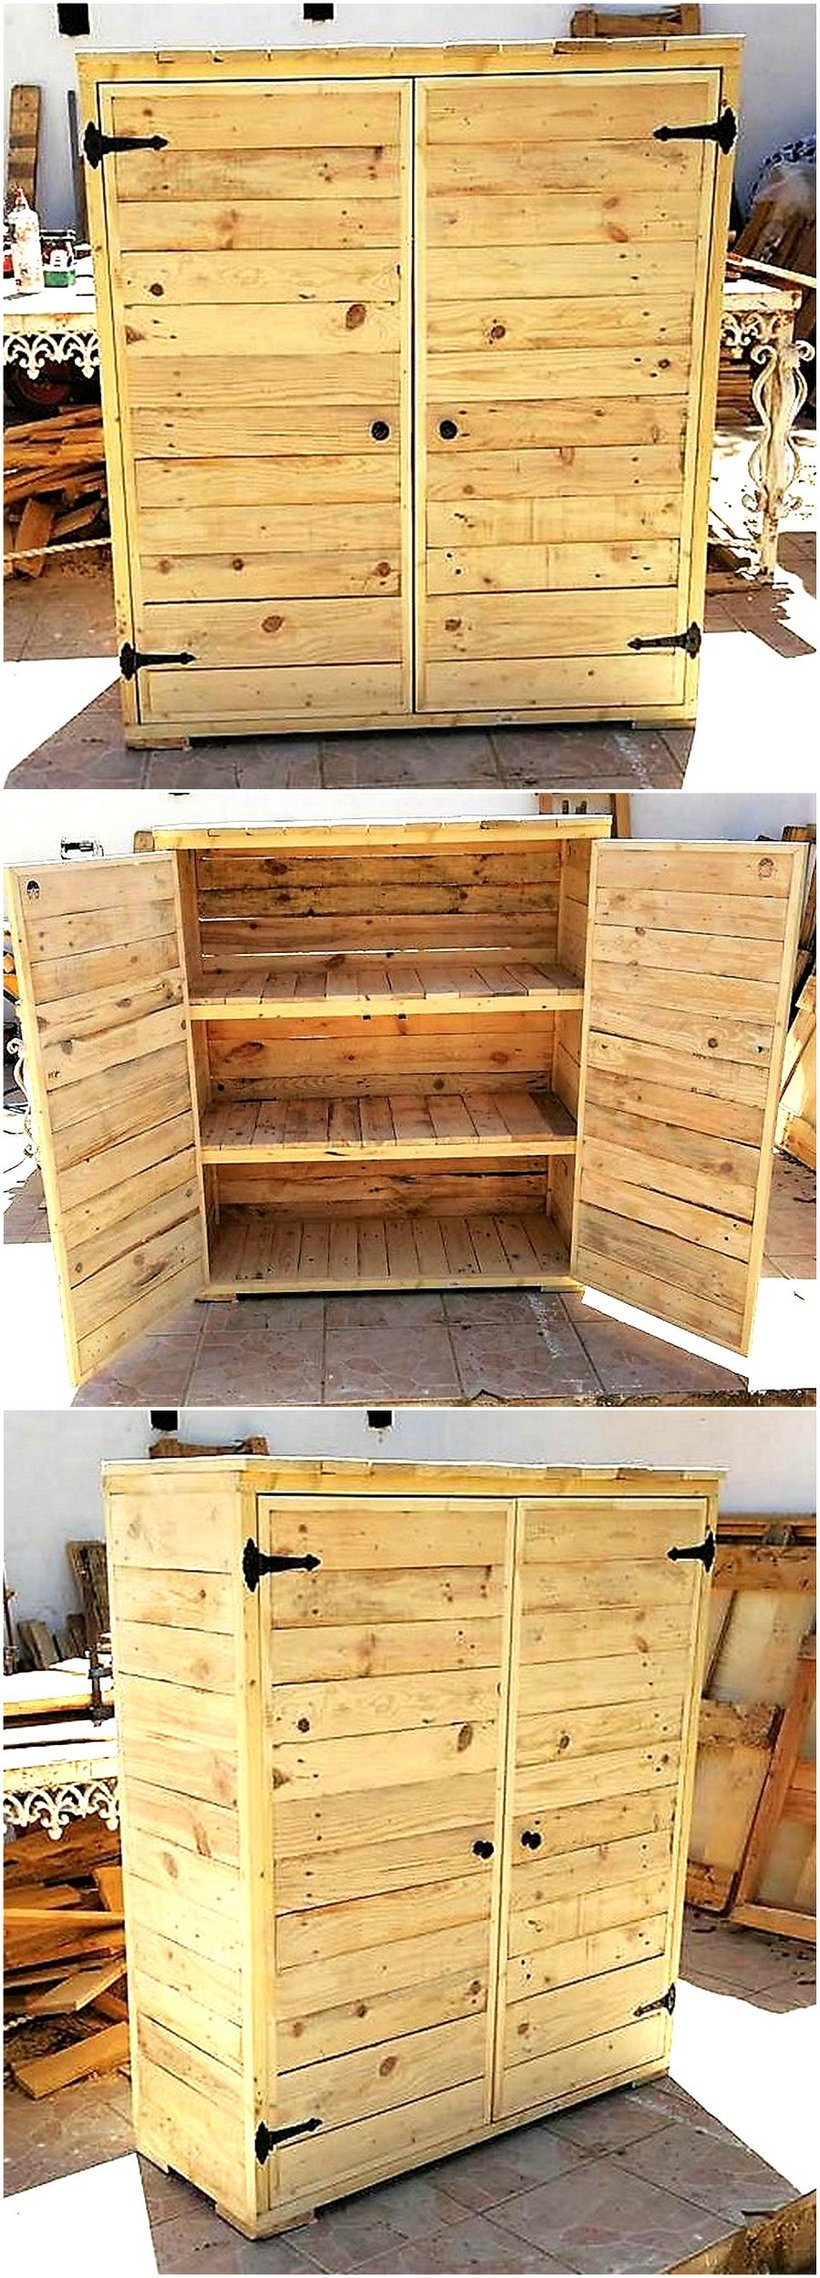 wooden pallet clsoet idea